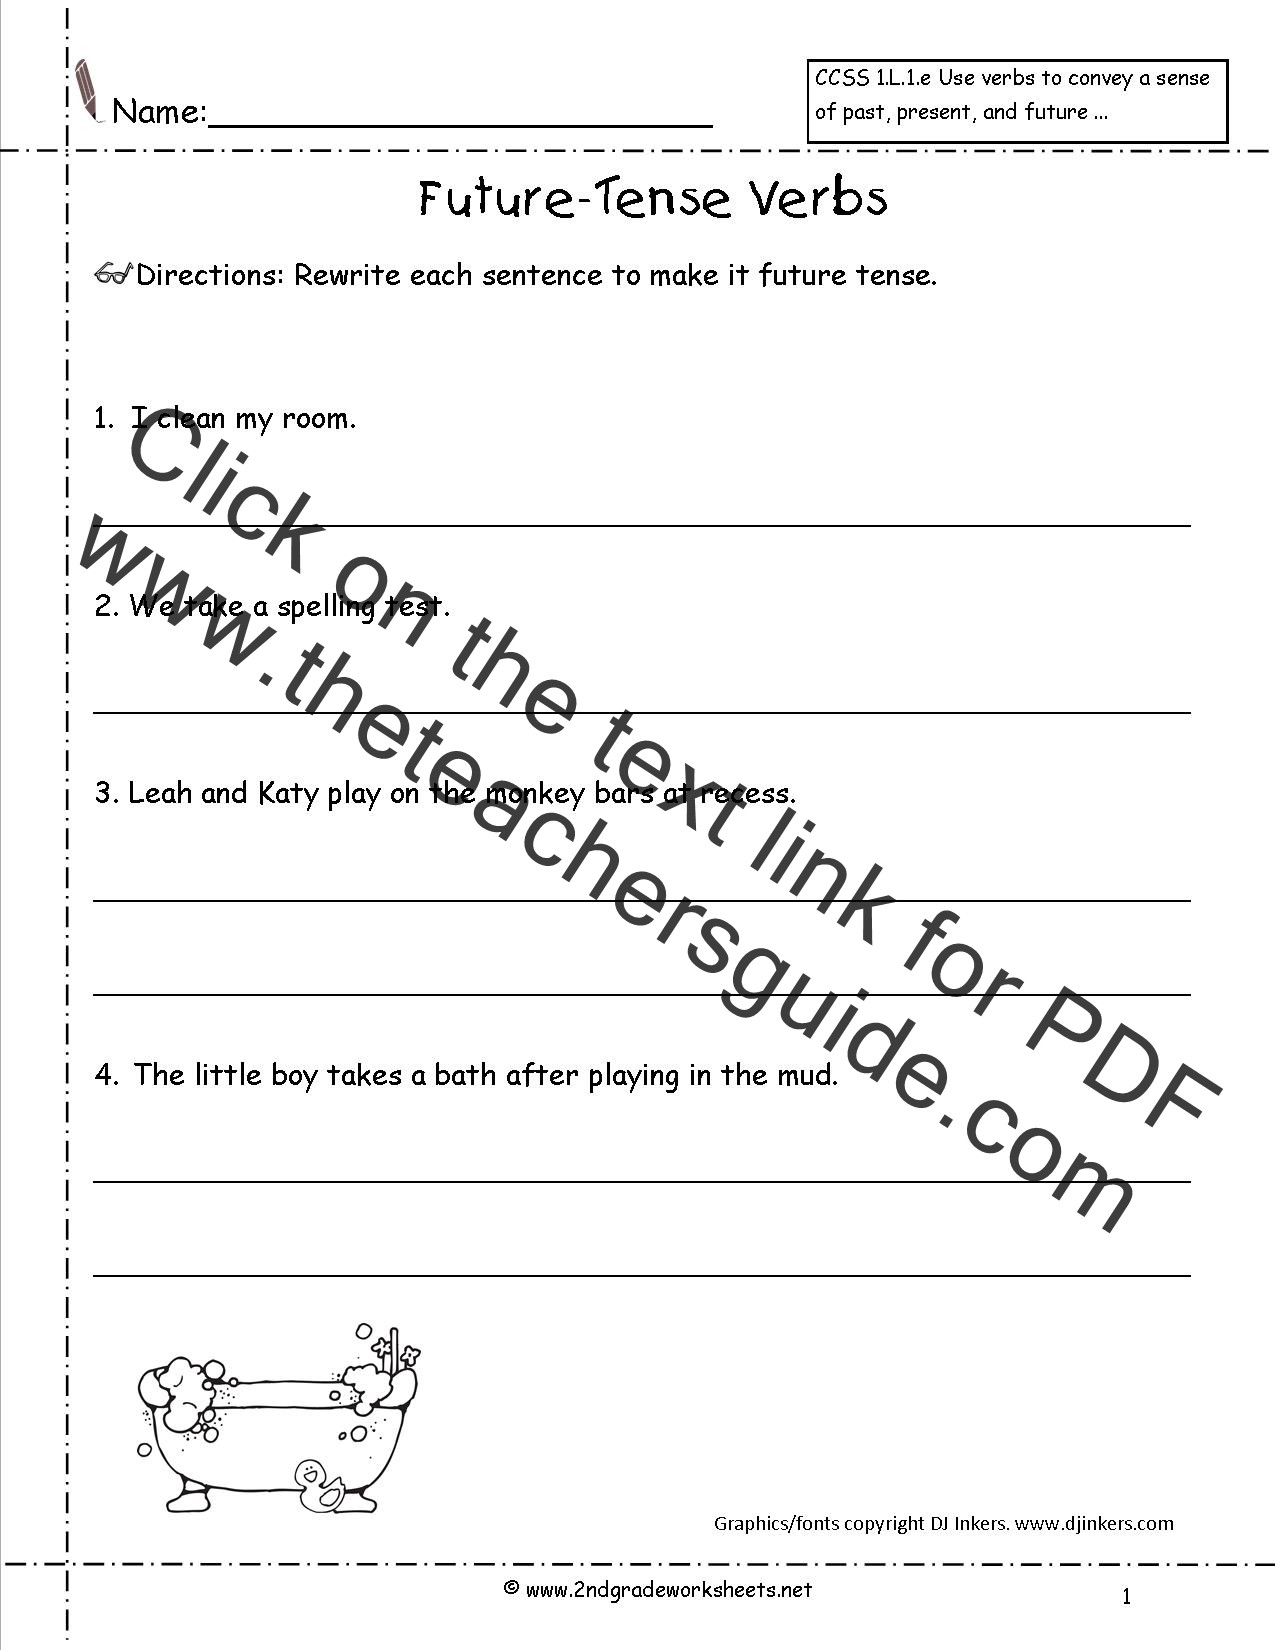 Verb Tense Worksheets 1st Grade Future Tense Verbs Worksheet